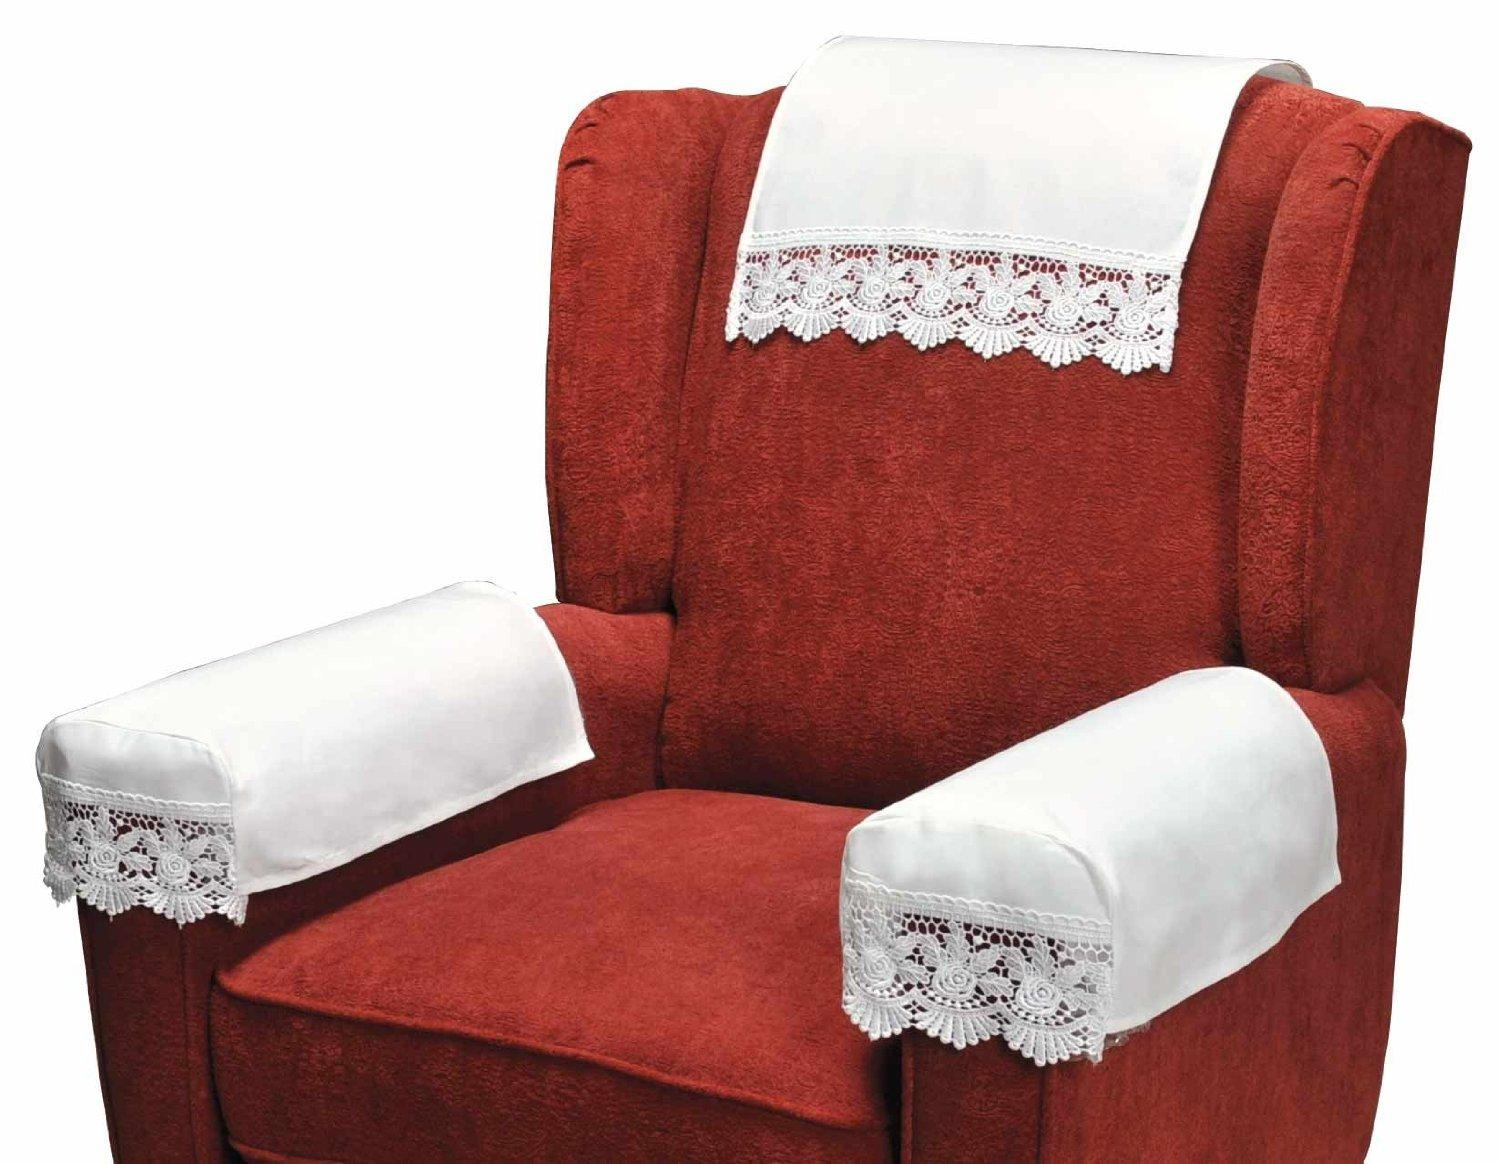 Accessories: Unique Fabric Ready Made Slip Covers With Quote Motif With Regard To Sofa Accessories (Image 3 of 20)